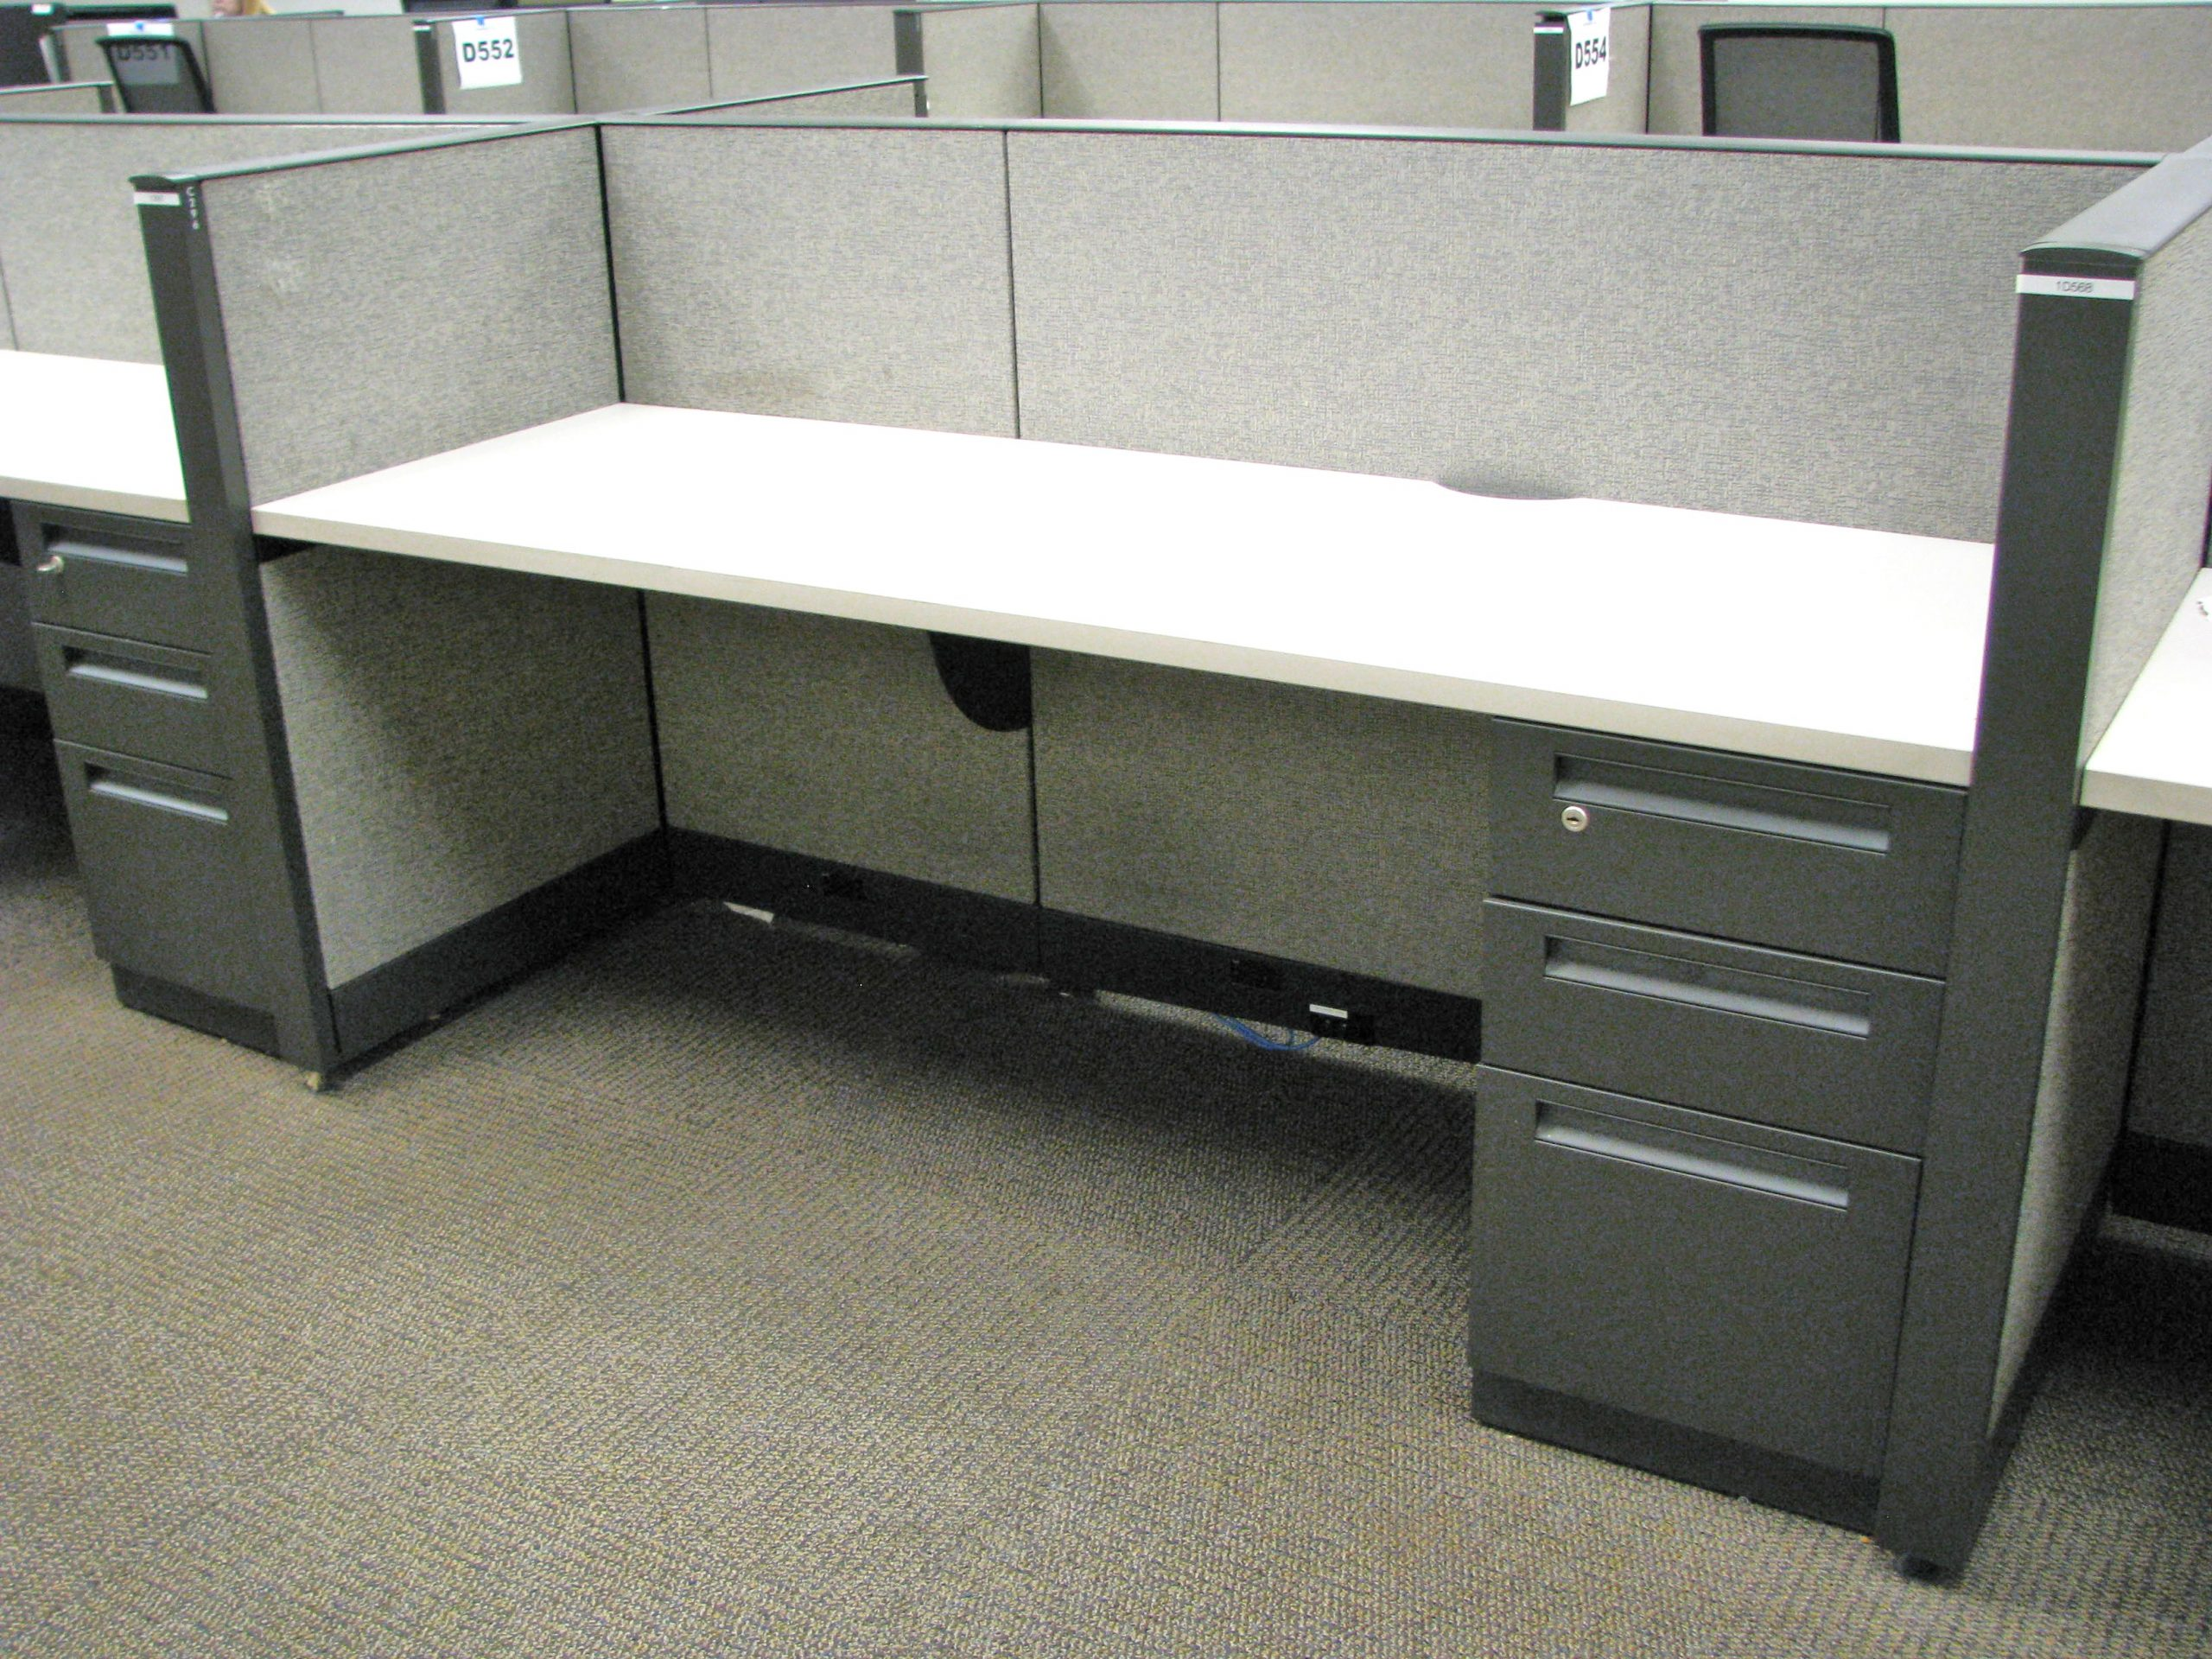 6′ X 2′ X 42″H Answer Stations